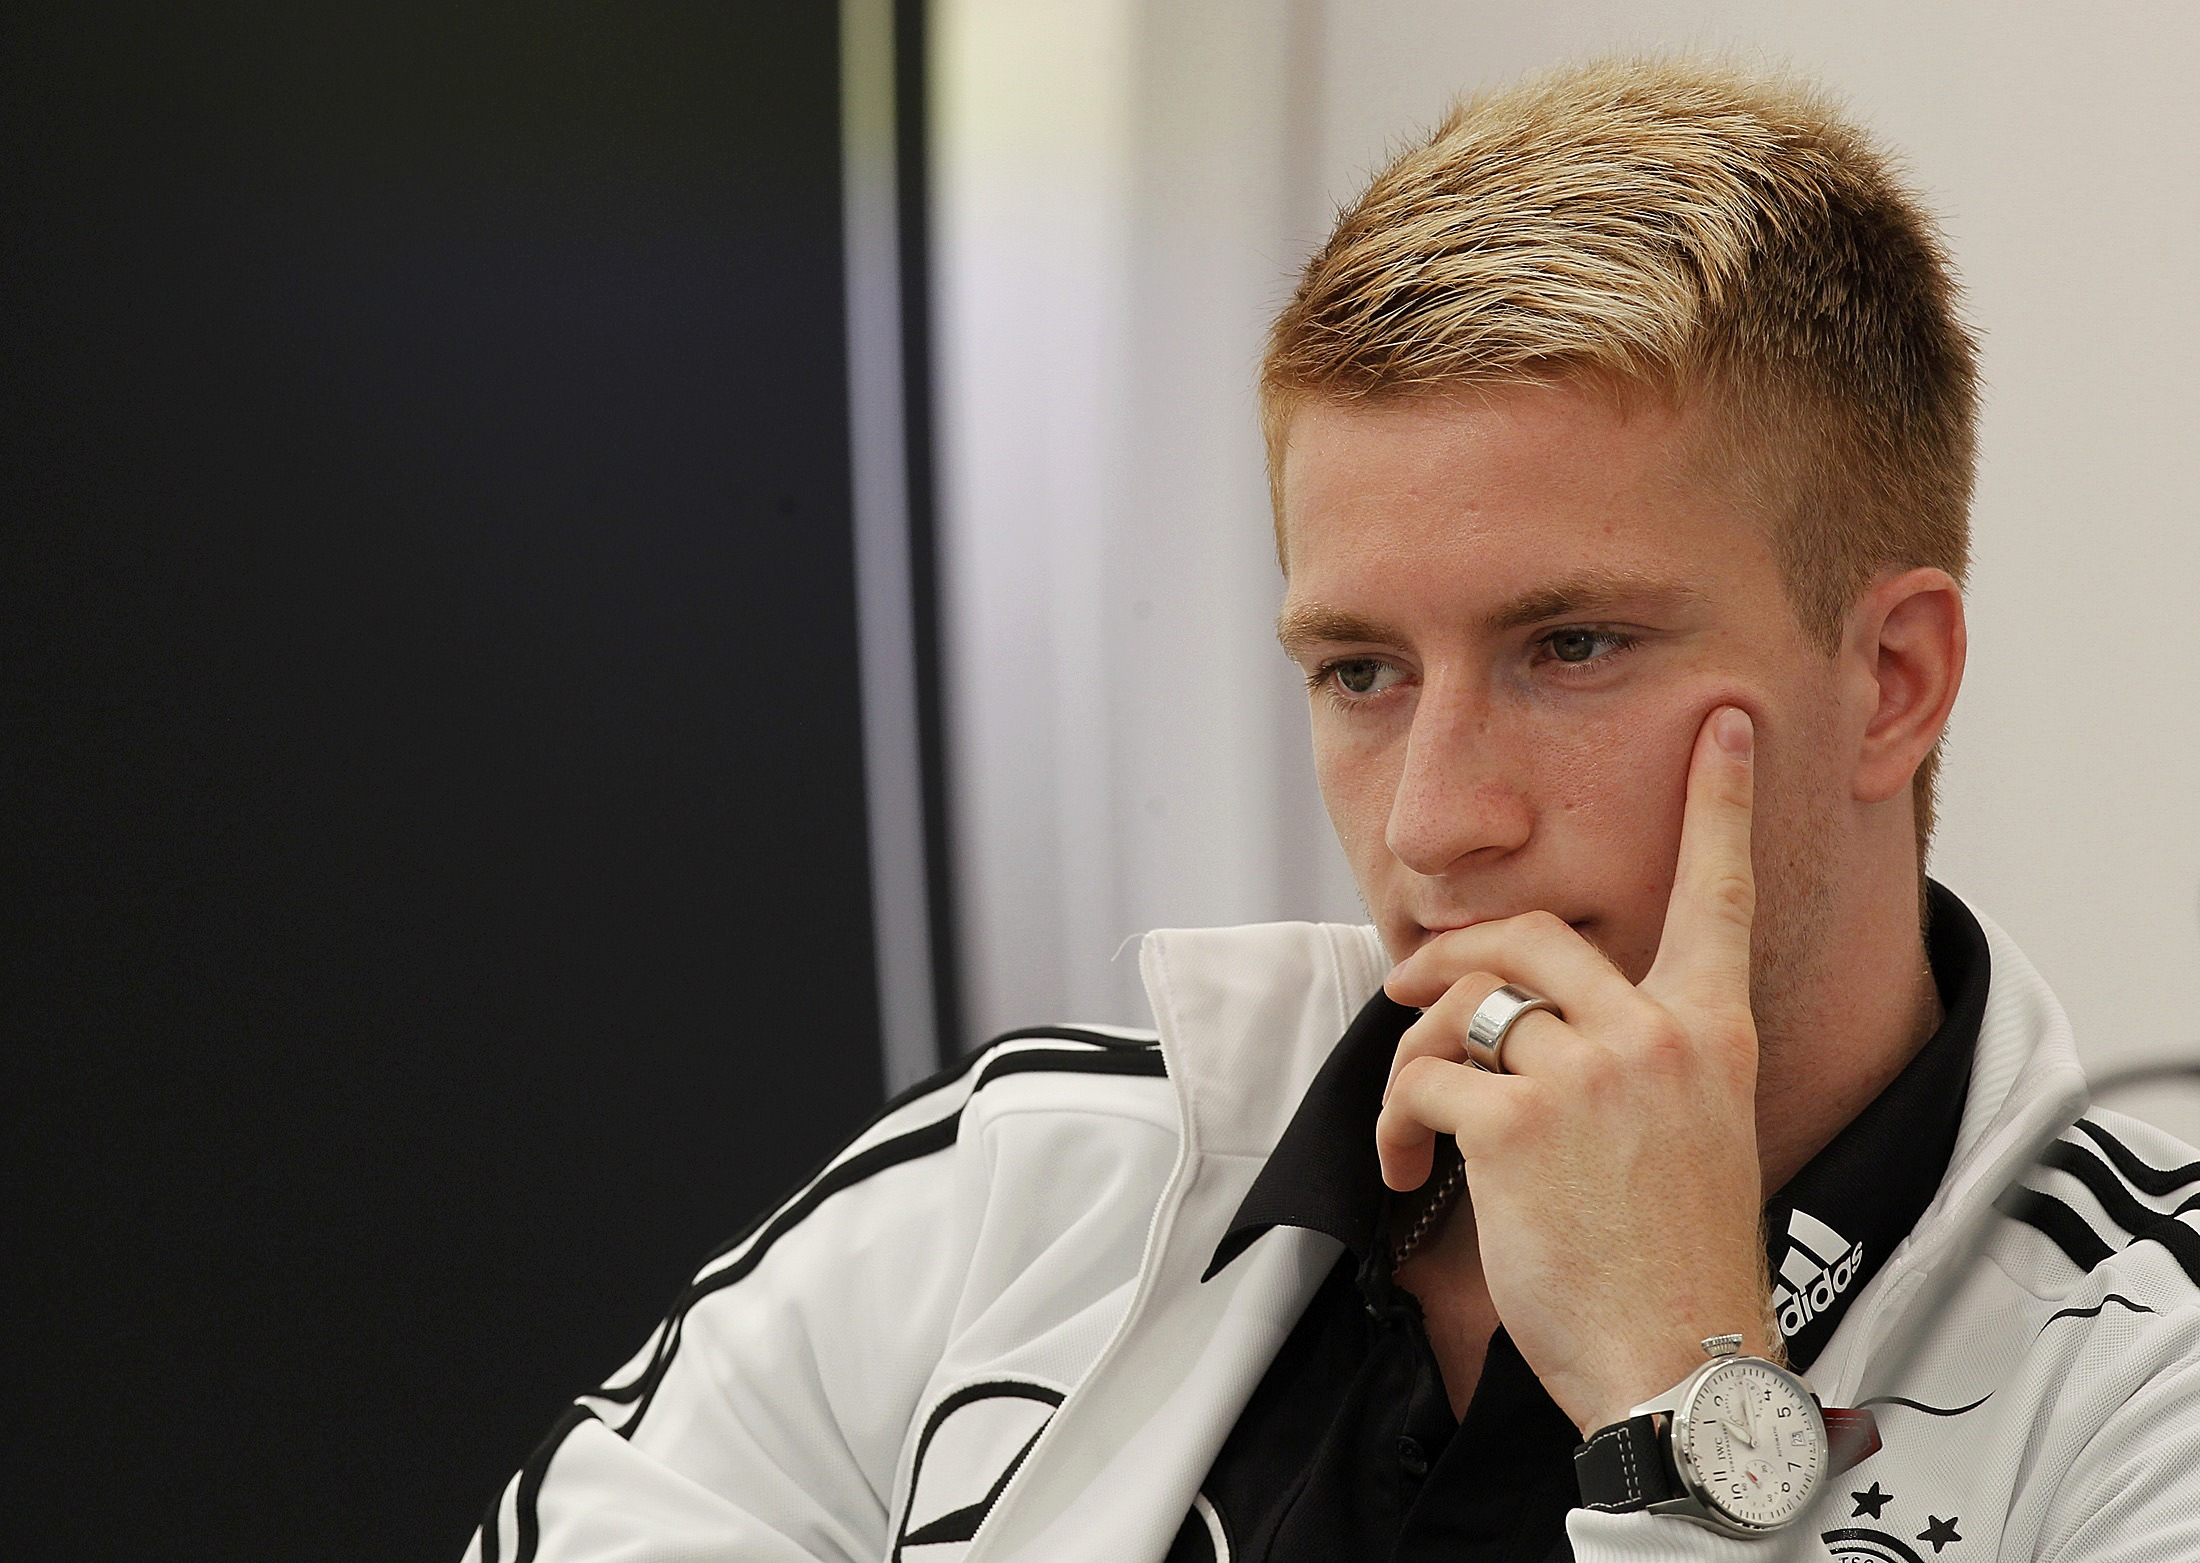 Marco Reus Hairstyle Name Funny Mustang Meme 23 Chevrolet Cars New Used Chevy Reviews